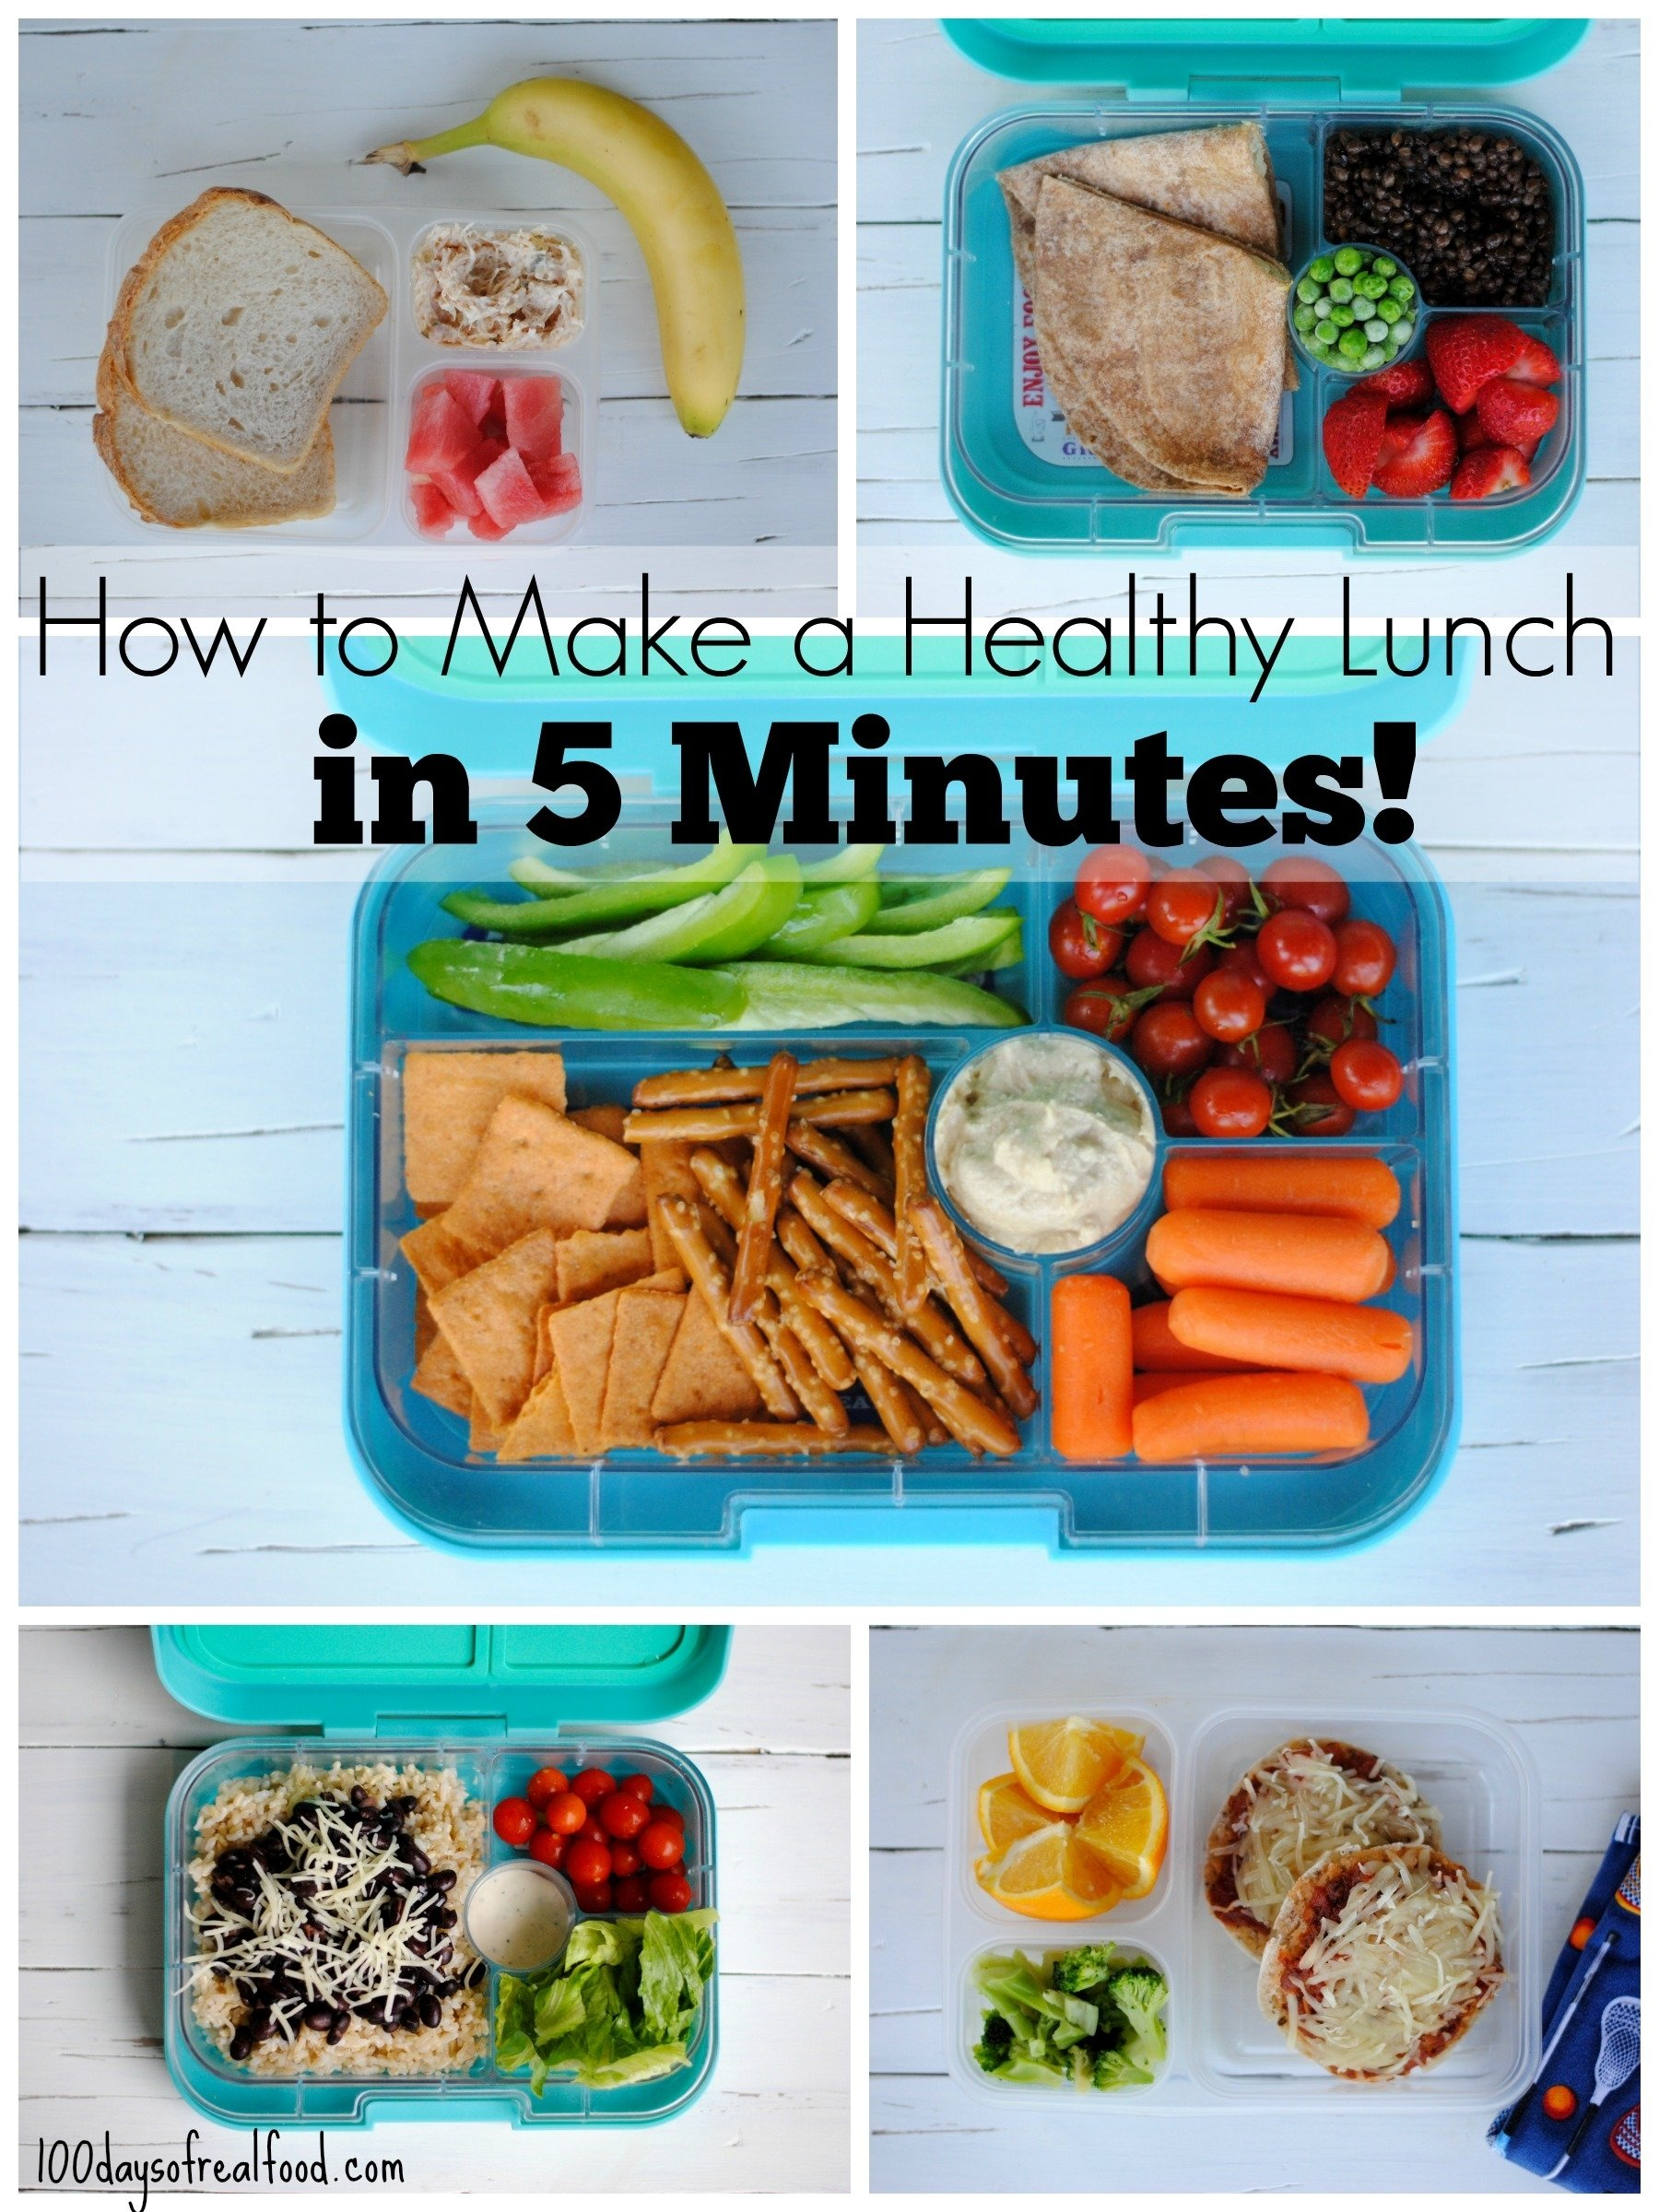 10 Elegant Healthy Lunch Ideas To Pack 5 healthy packed lunches in 5 minutes 100 days of real food 2020